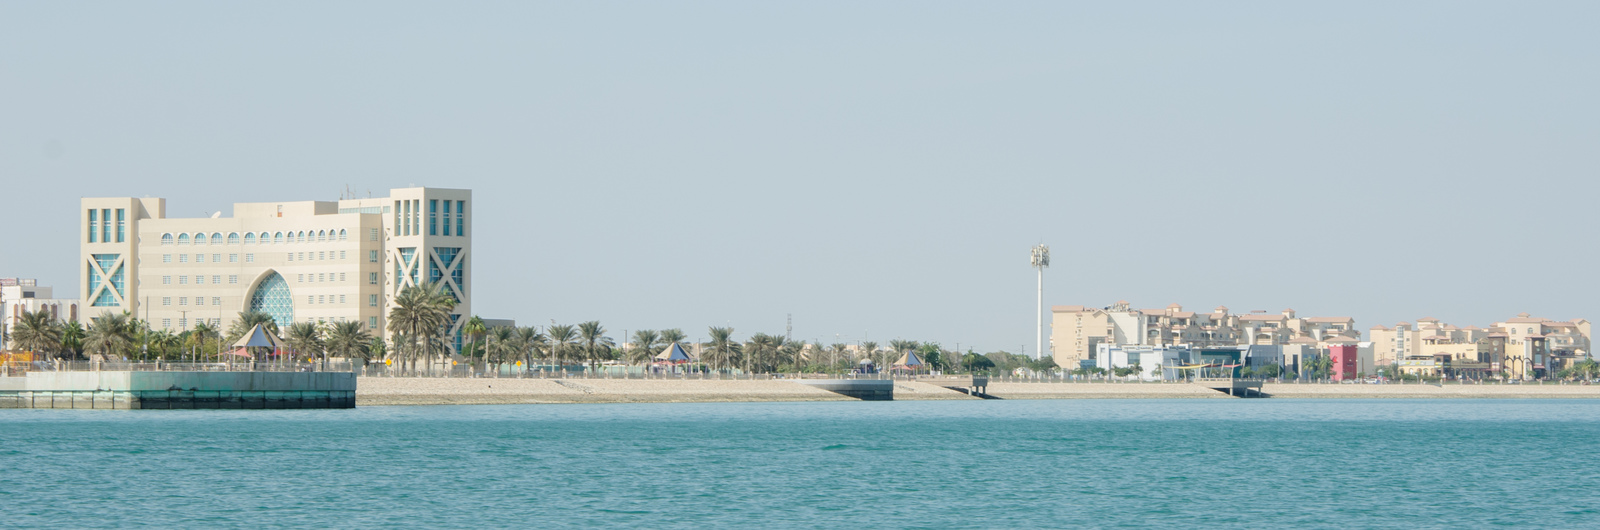 jubail city header 1